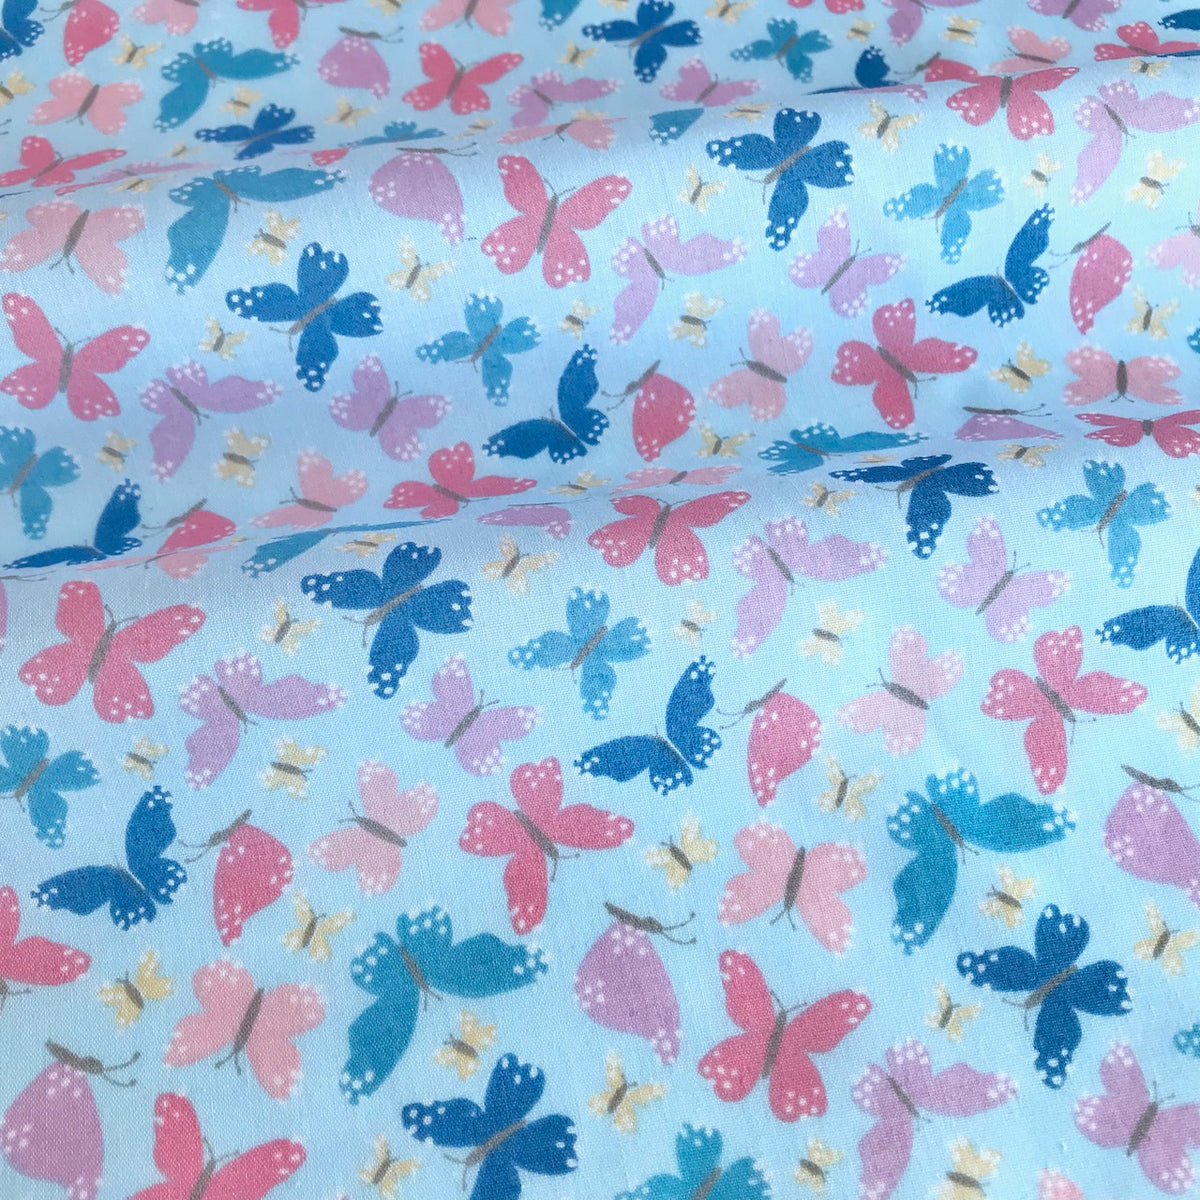 Pale Blue & Pink Butterflies Fabric Polycotton Per 1/2 Metre 112cm Wide